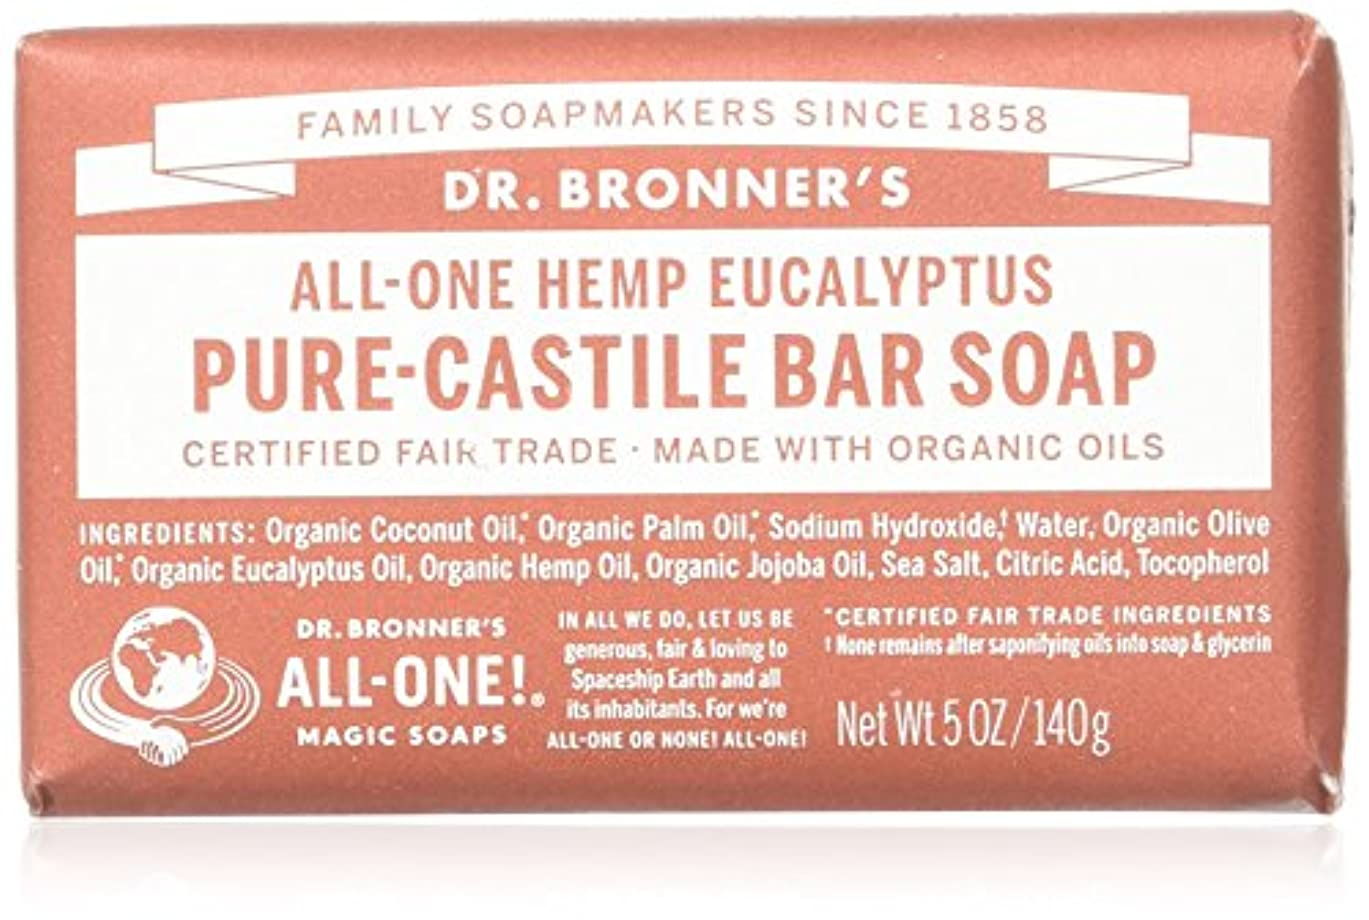 シェルターバイアス夕食を食べるDr. Bronner's Eucalyptus Bar Soap Made with Organic Ingredients 141 g by Dr. Bronner's [並行輸入品]